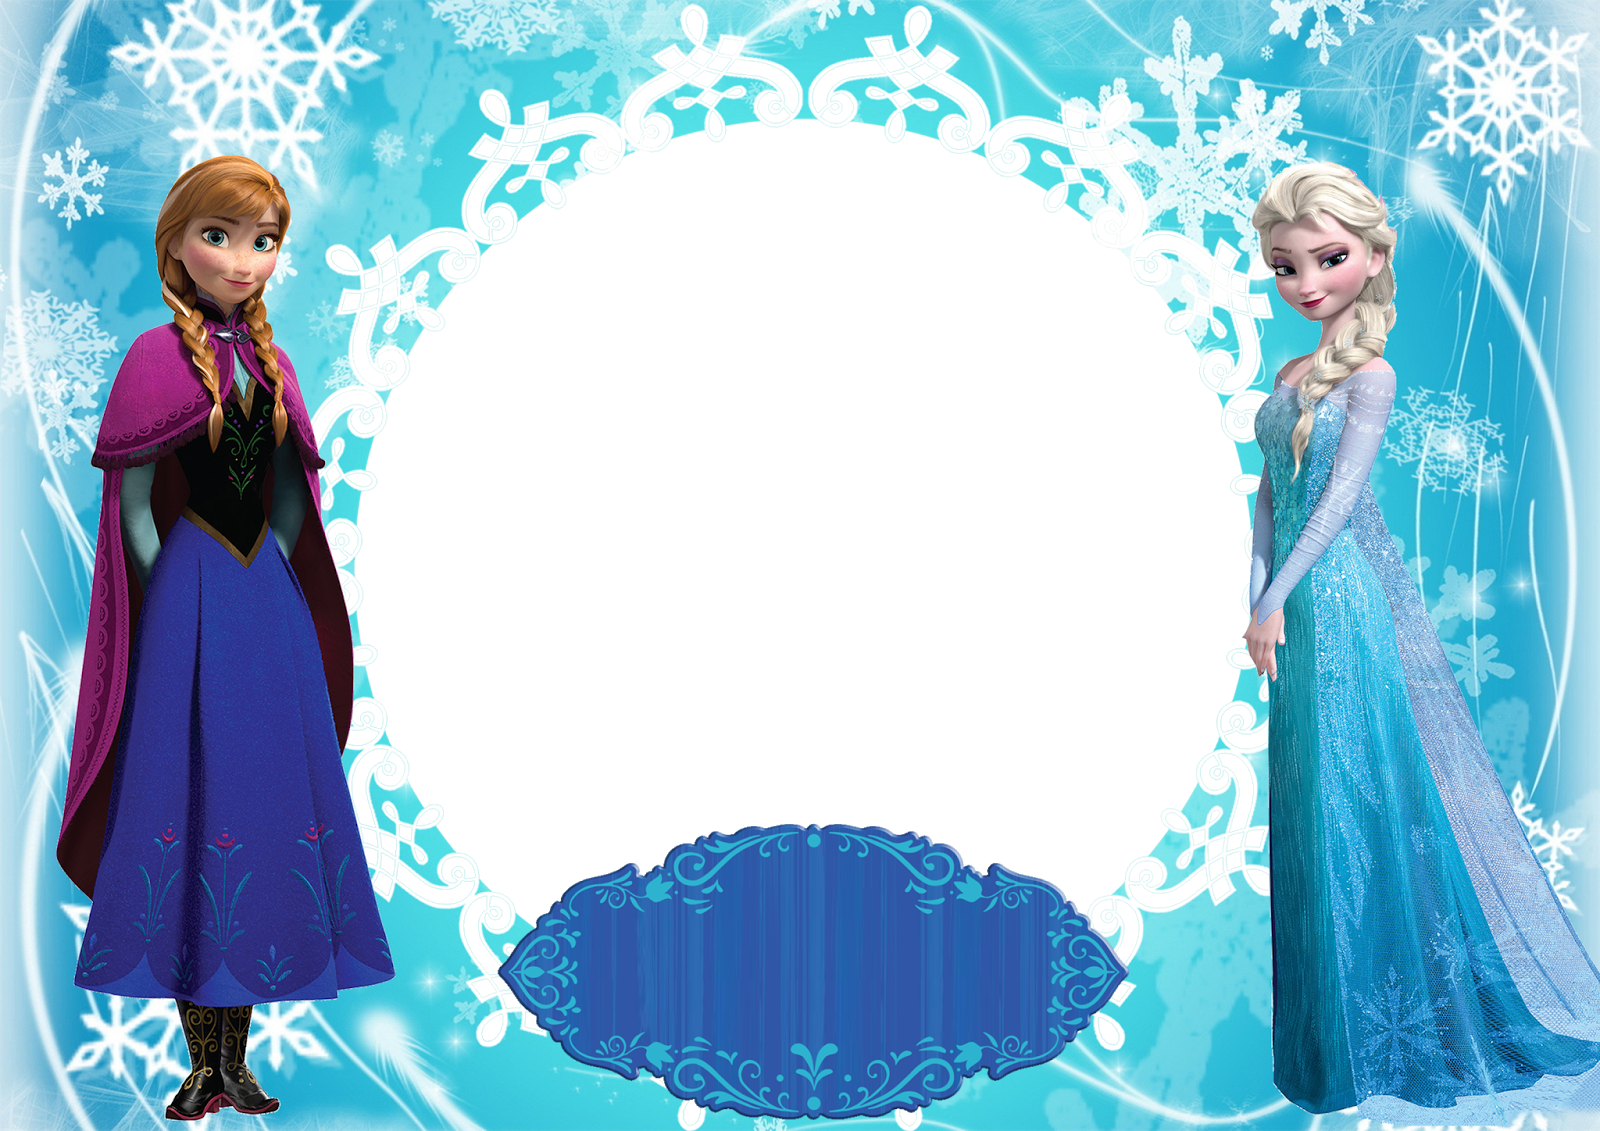 Frozen castle png. Free icons and backgrounds